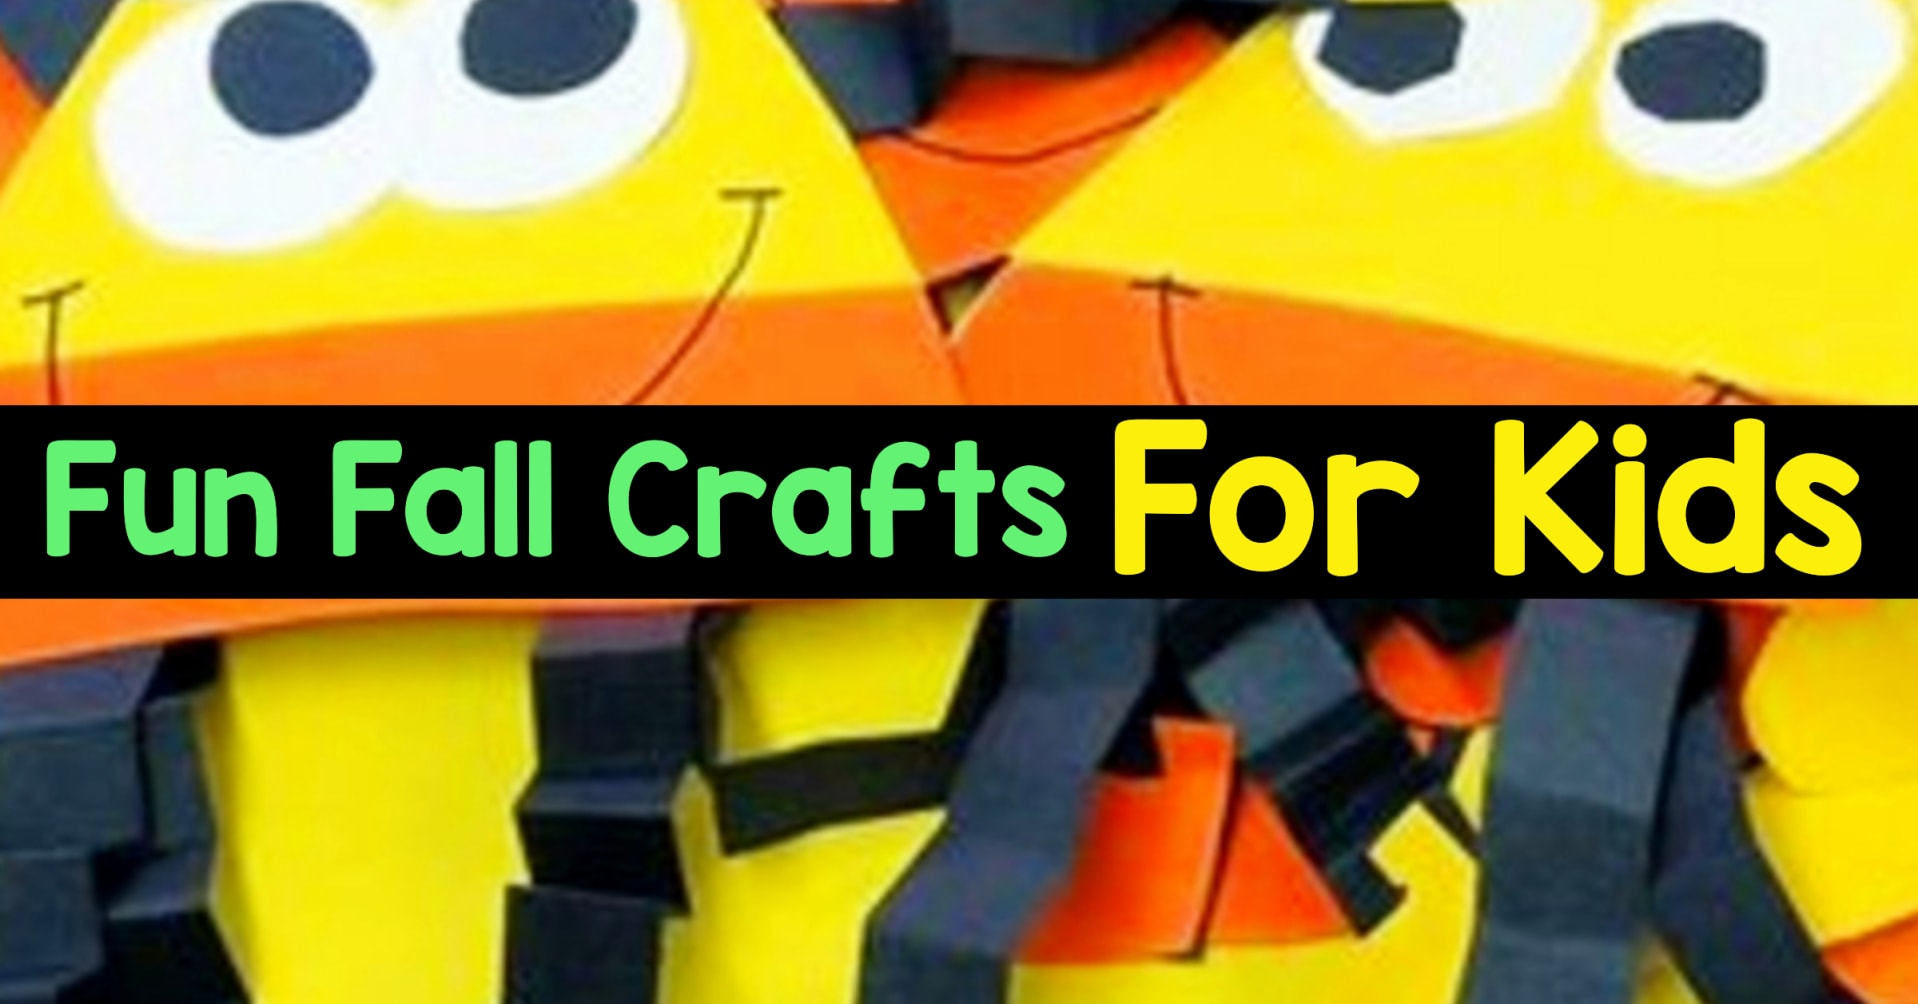 Fall Crafts - Fun & Easy Fall Crafts For Kids To Make - Cute and Easy DIY Kids Fall Crafts To Make at Preschool, Pre-K, Sunday School Or a Fun Craft Project At Home